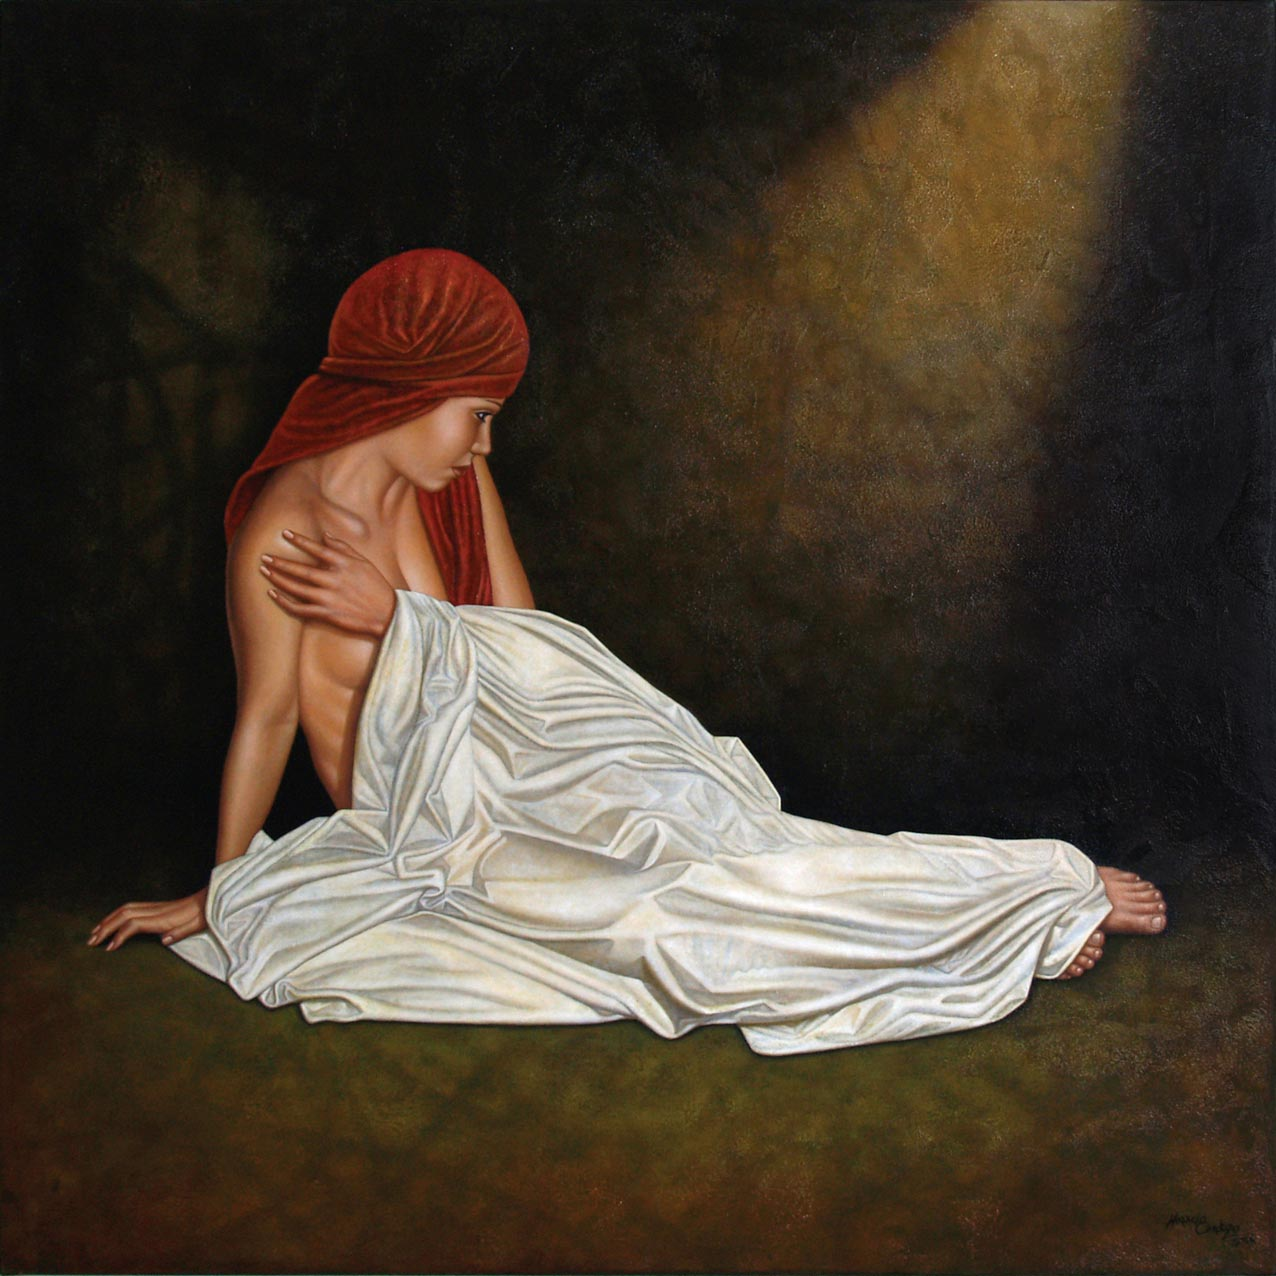 Paintings of Nude Women - Nude and Semi Nude Art